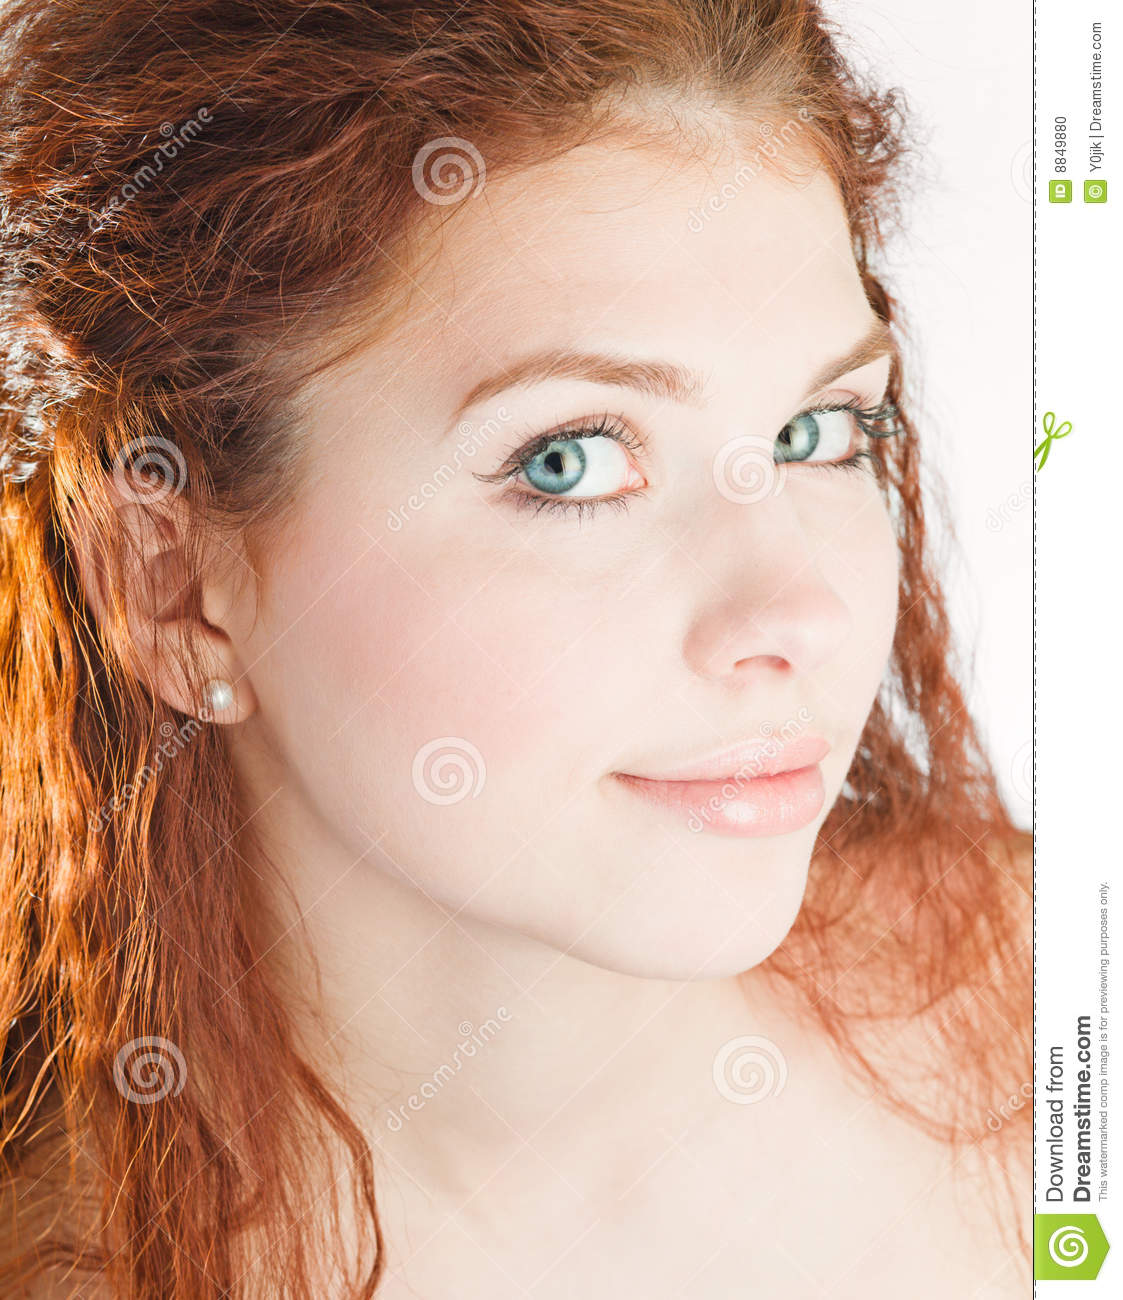 young girl with red hair stock photo image of forest young pretty girl with red hair stock photo image 8849880